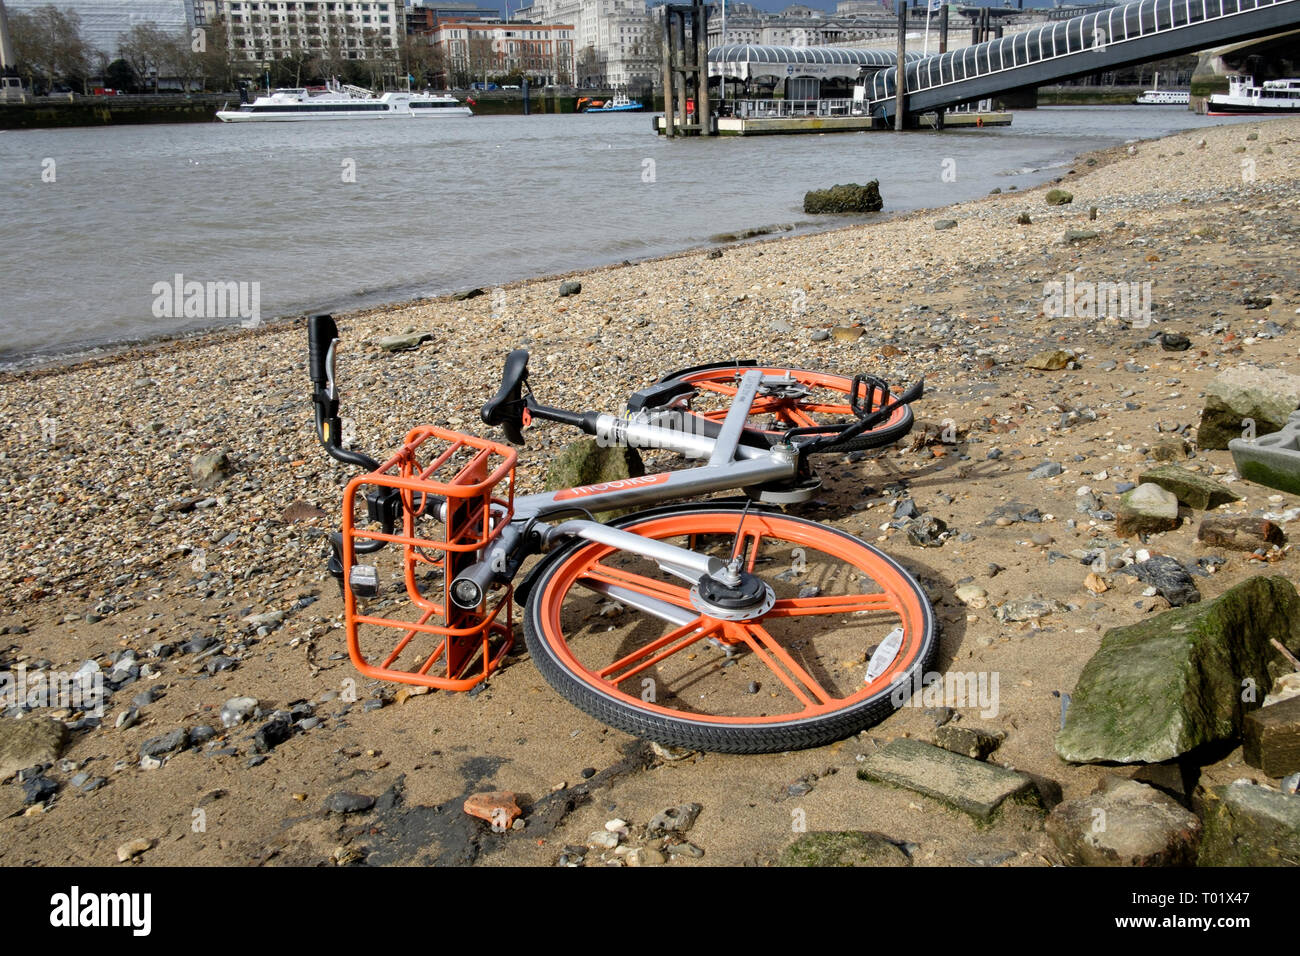 Mobike cycle sharing scheme bike abandoned on foreshore of River Thames, London. - Stock Image